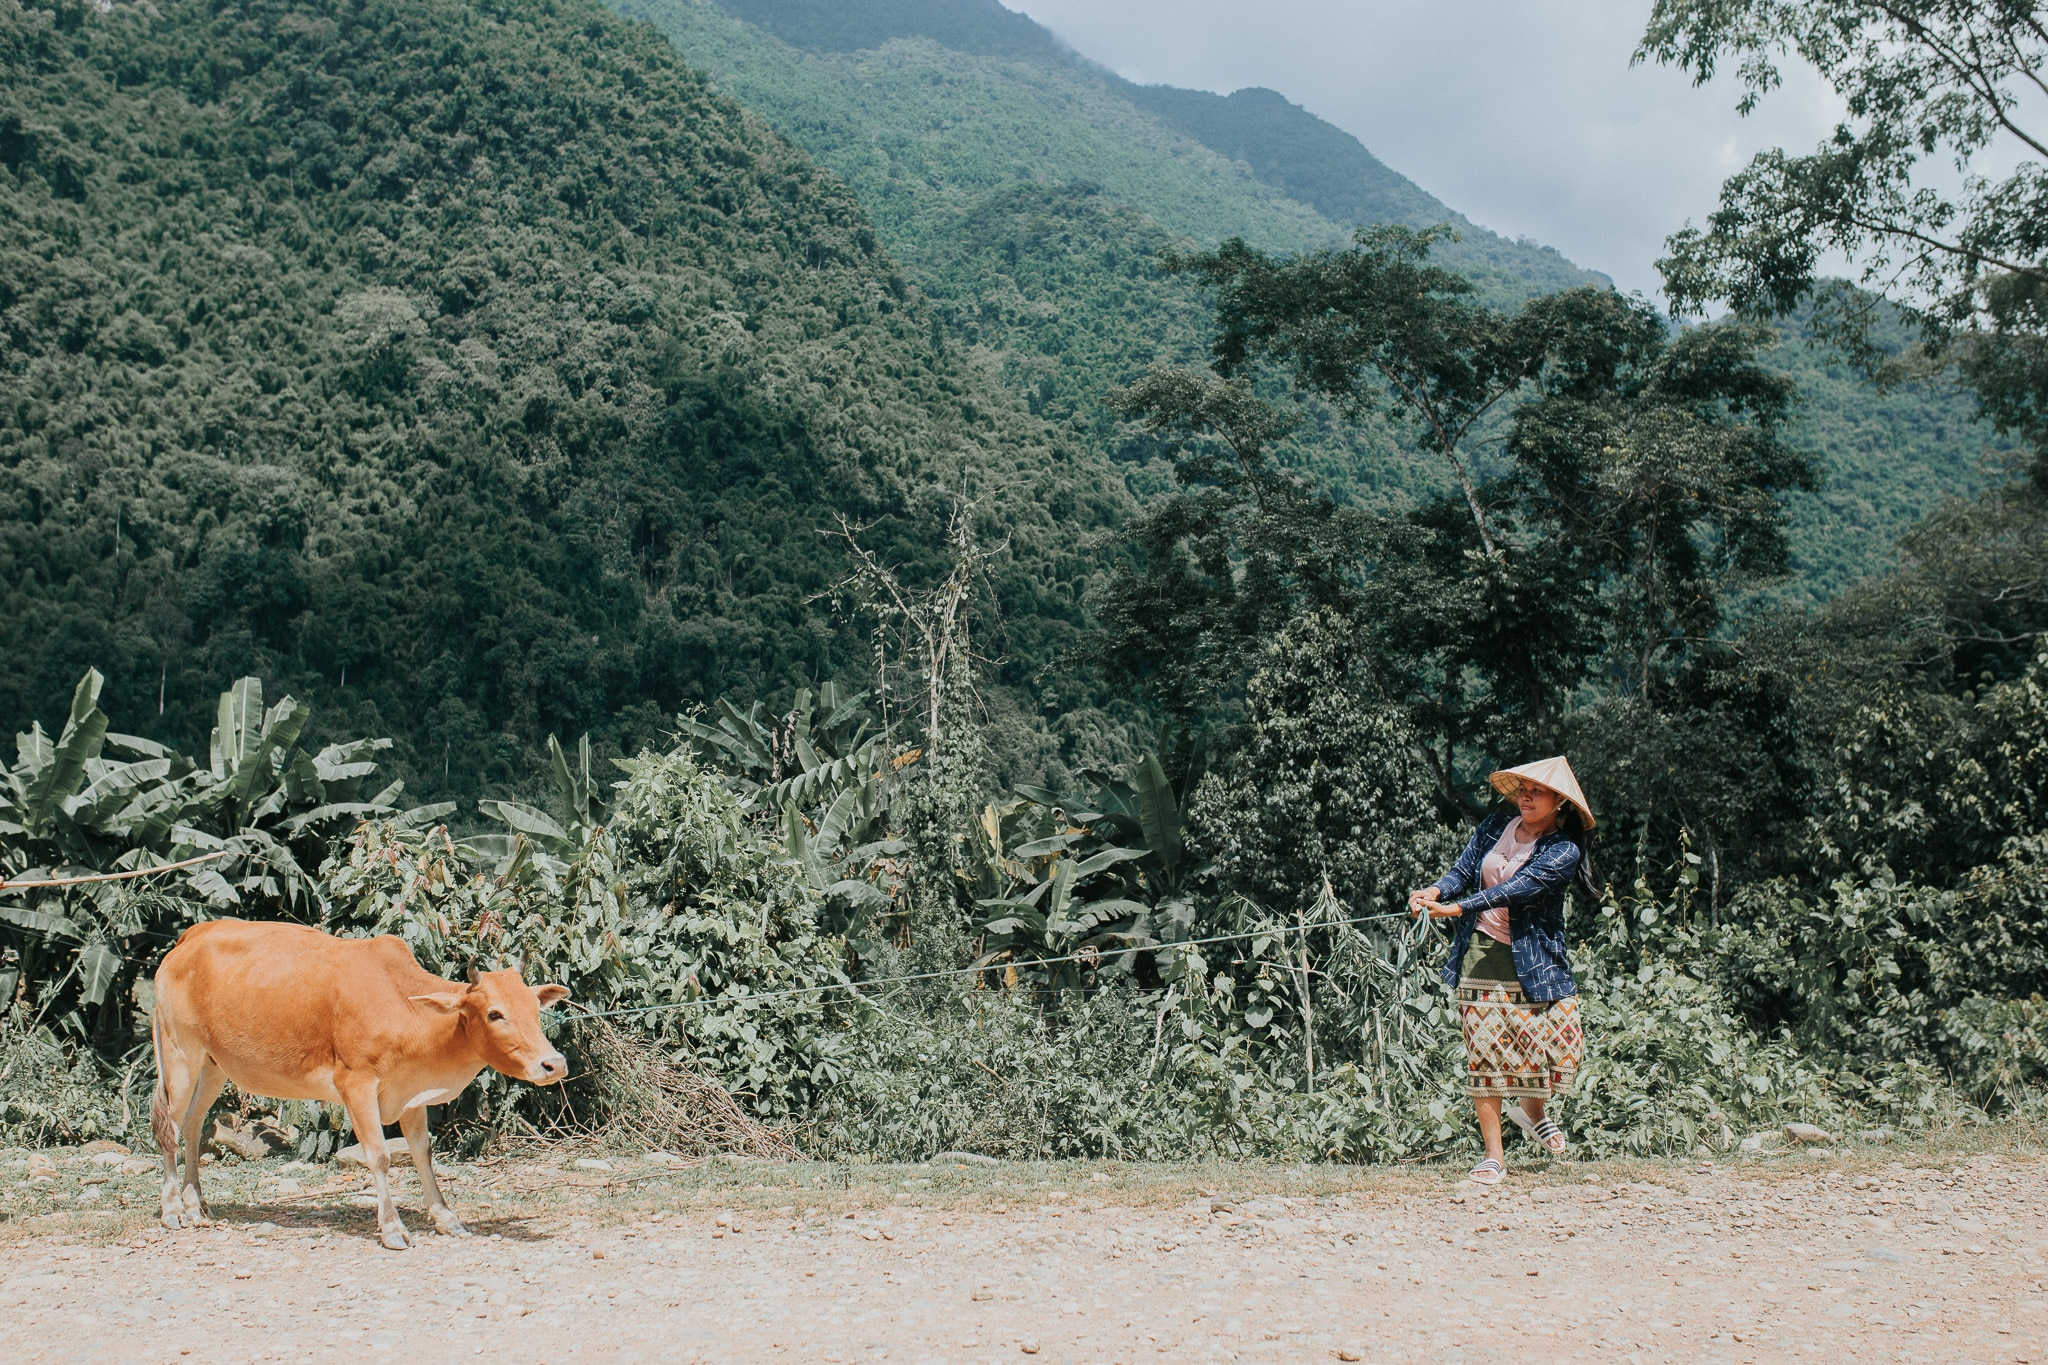 On week in Laos - Vang Vieng - Stubborn cow